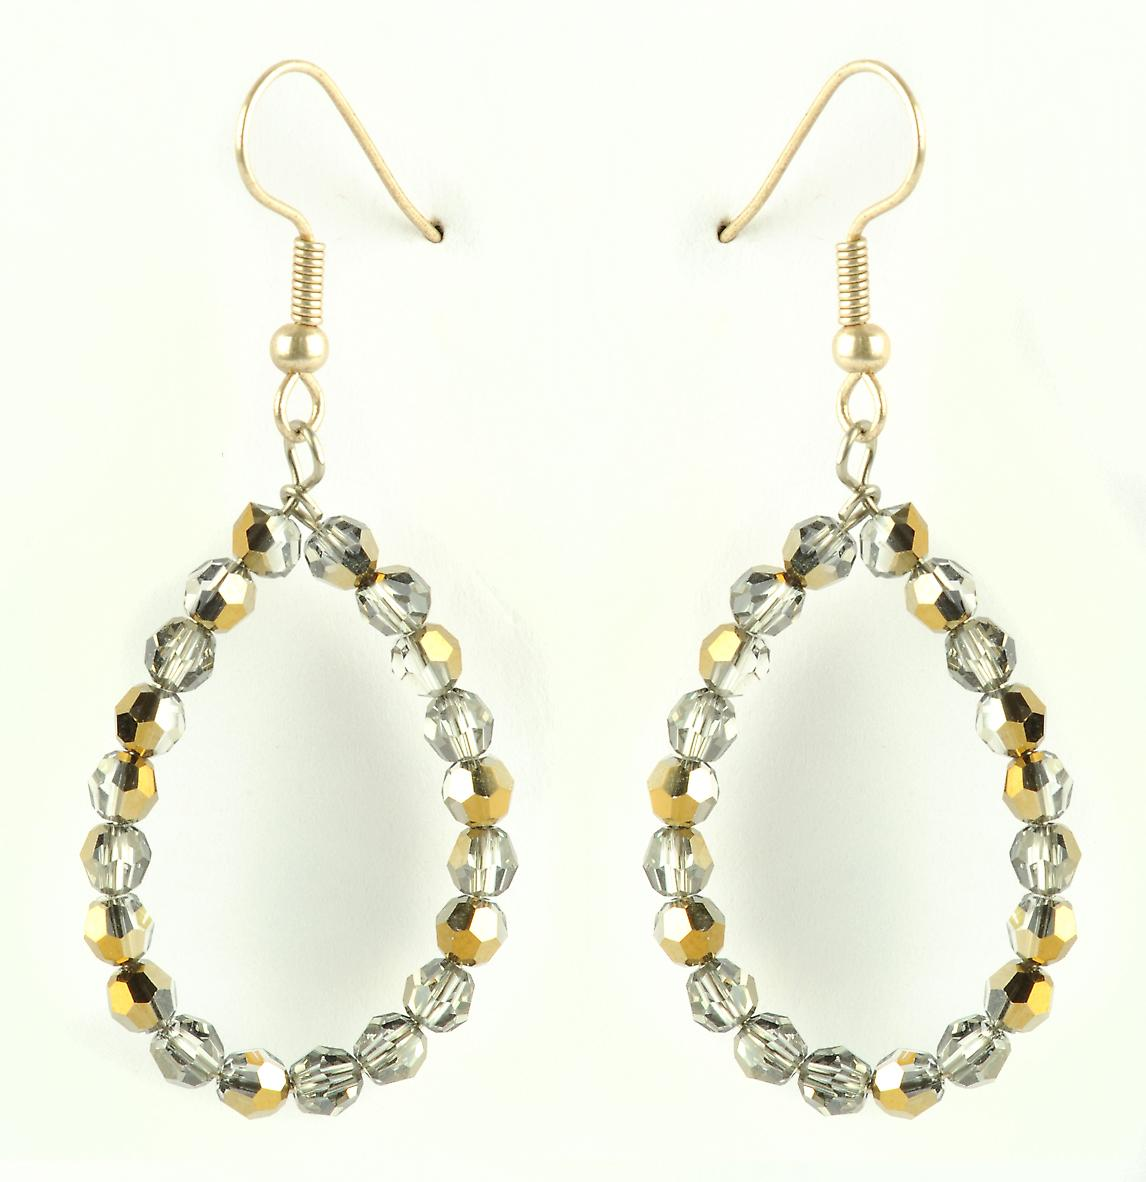 Waooh - jewelry - WJ0735 - earrings with Rhinestone Swarovski Silver Gold - mount silver